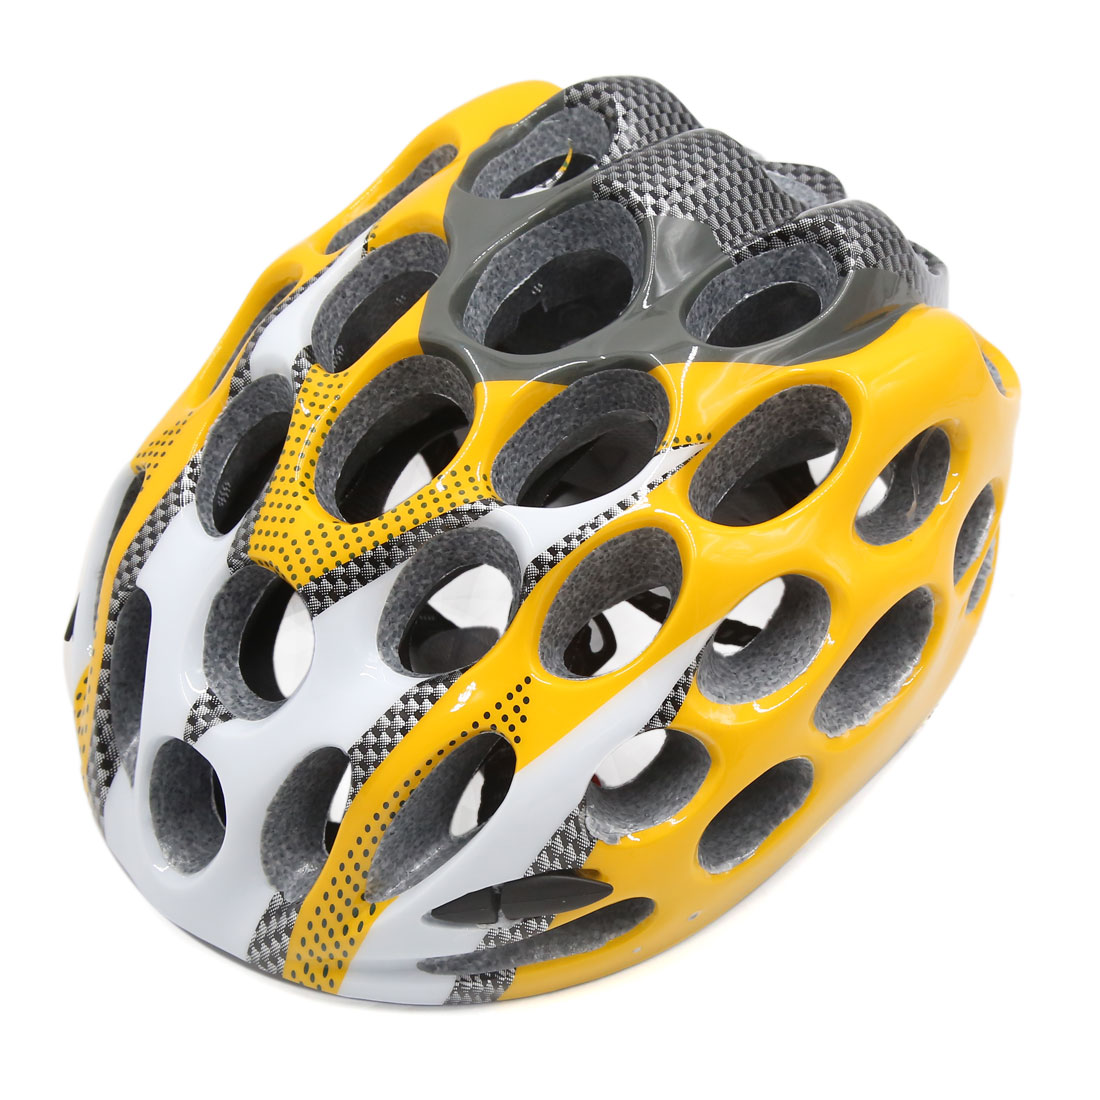 Honeycomb Shape 41 Holes Adjustable Outdoor MTB Cycling Bicycle Helmet Yellow